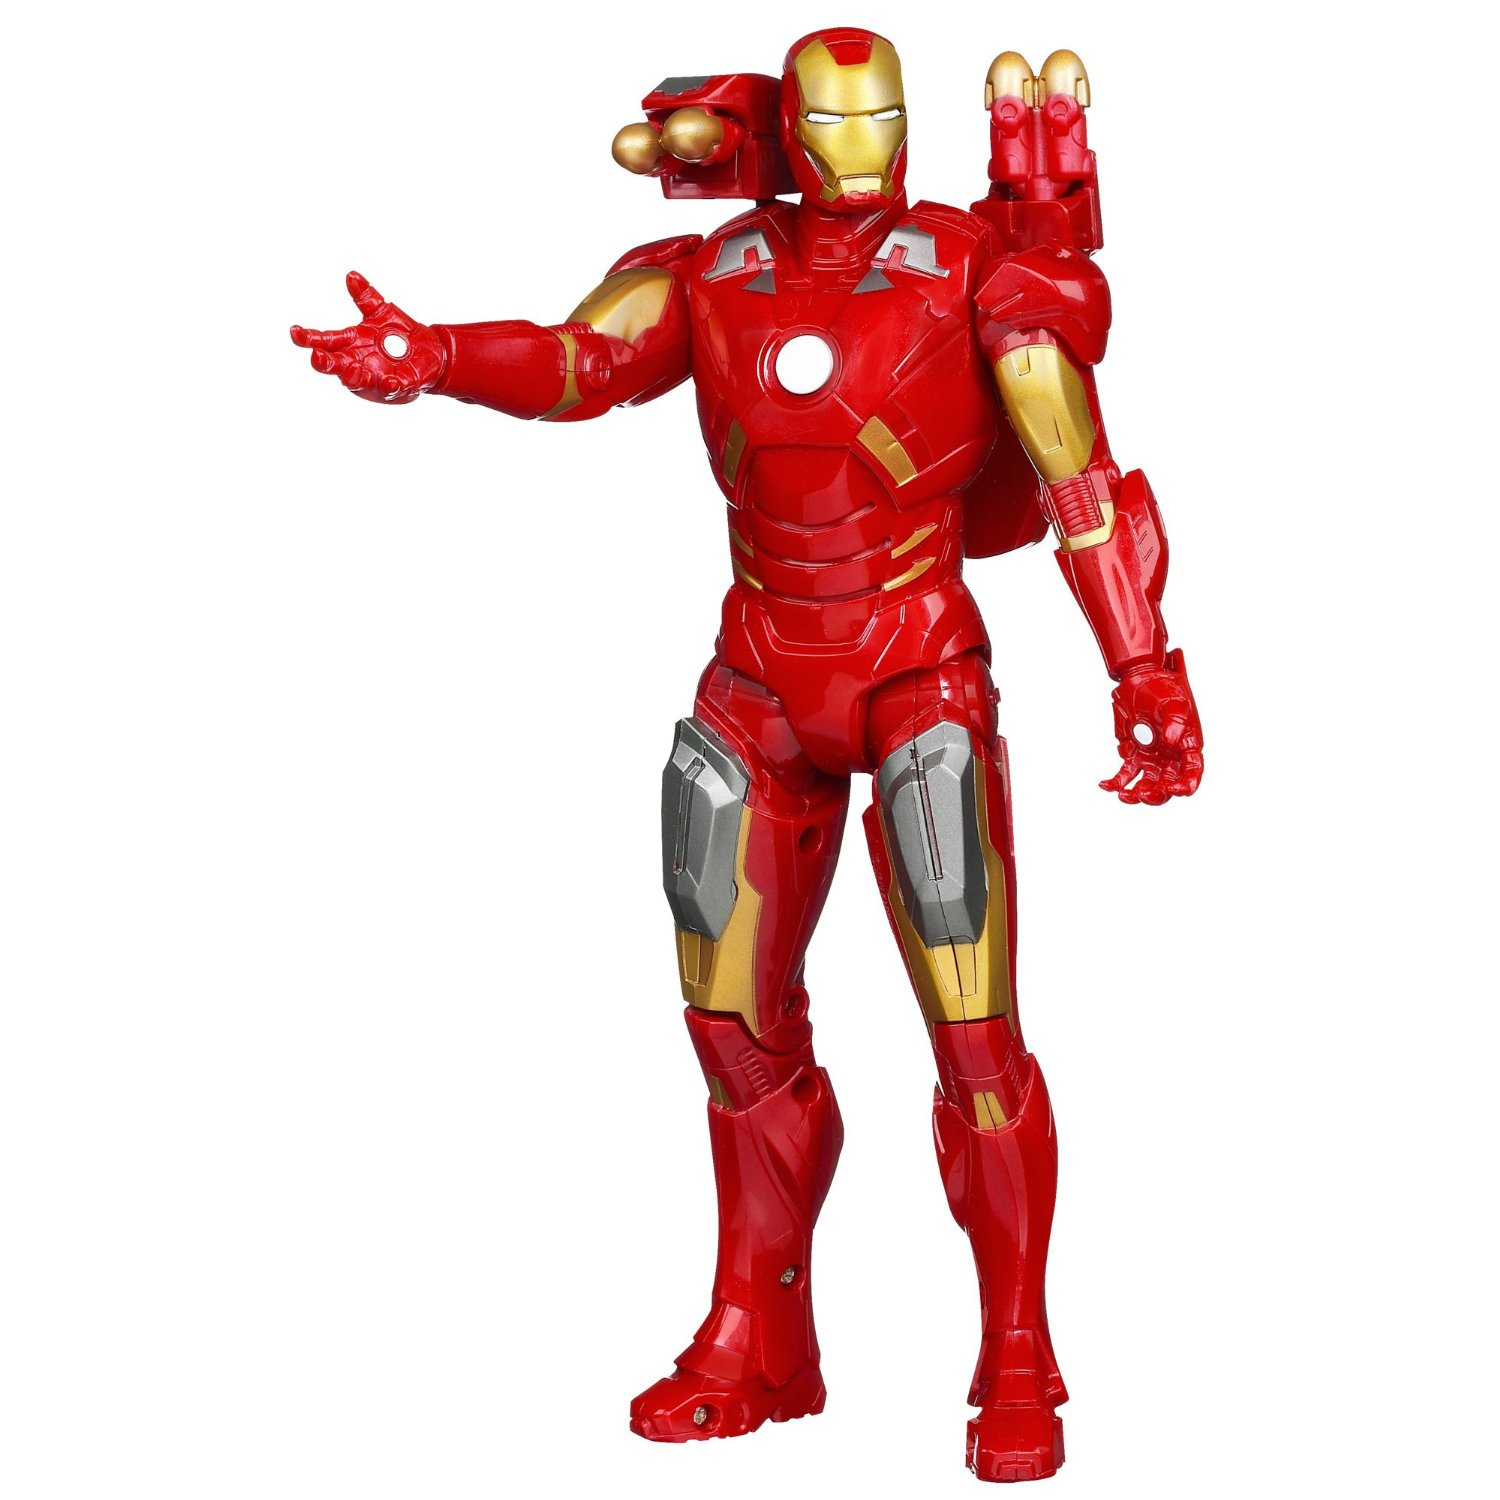 Walmart Toys For Boys Avengers : Avengers toys power attack iron man action figure at toystop